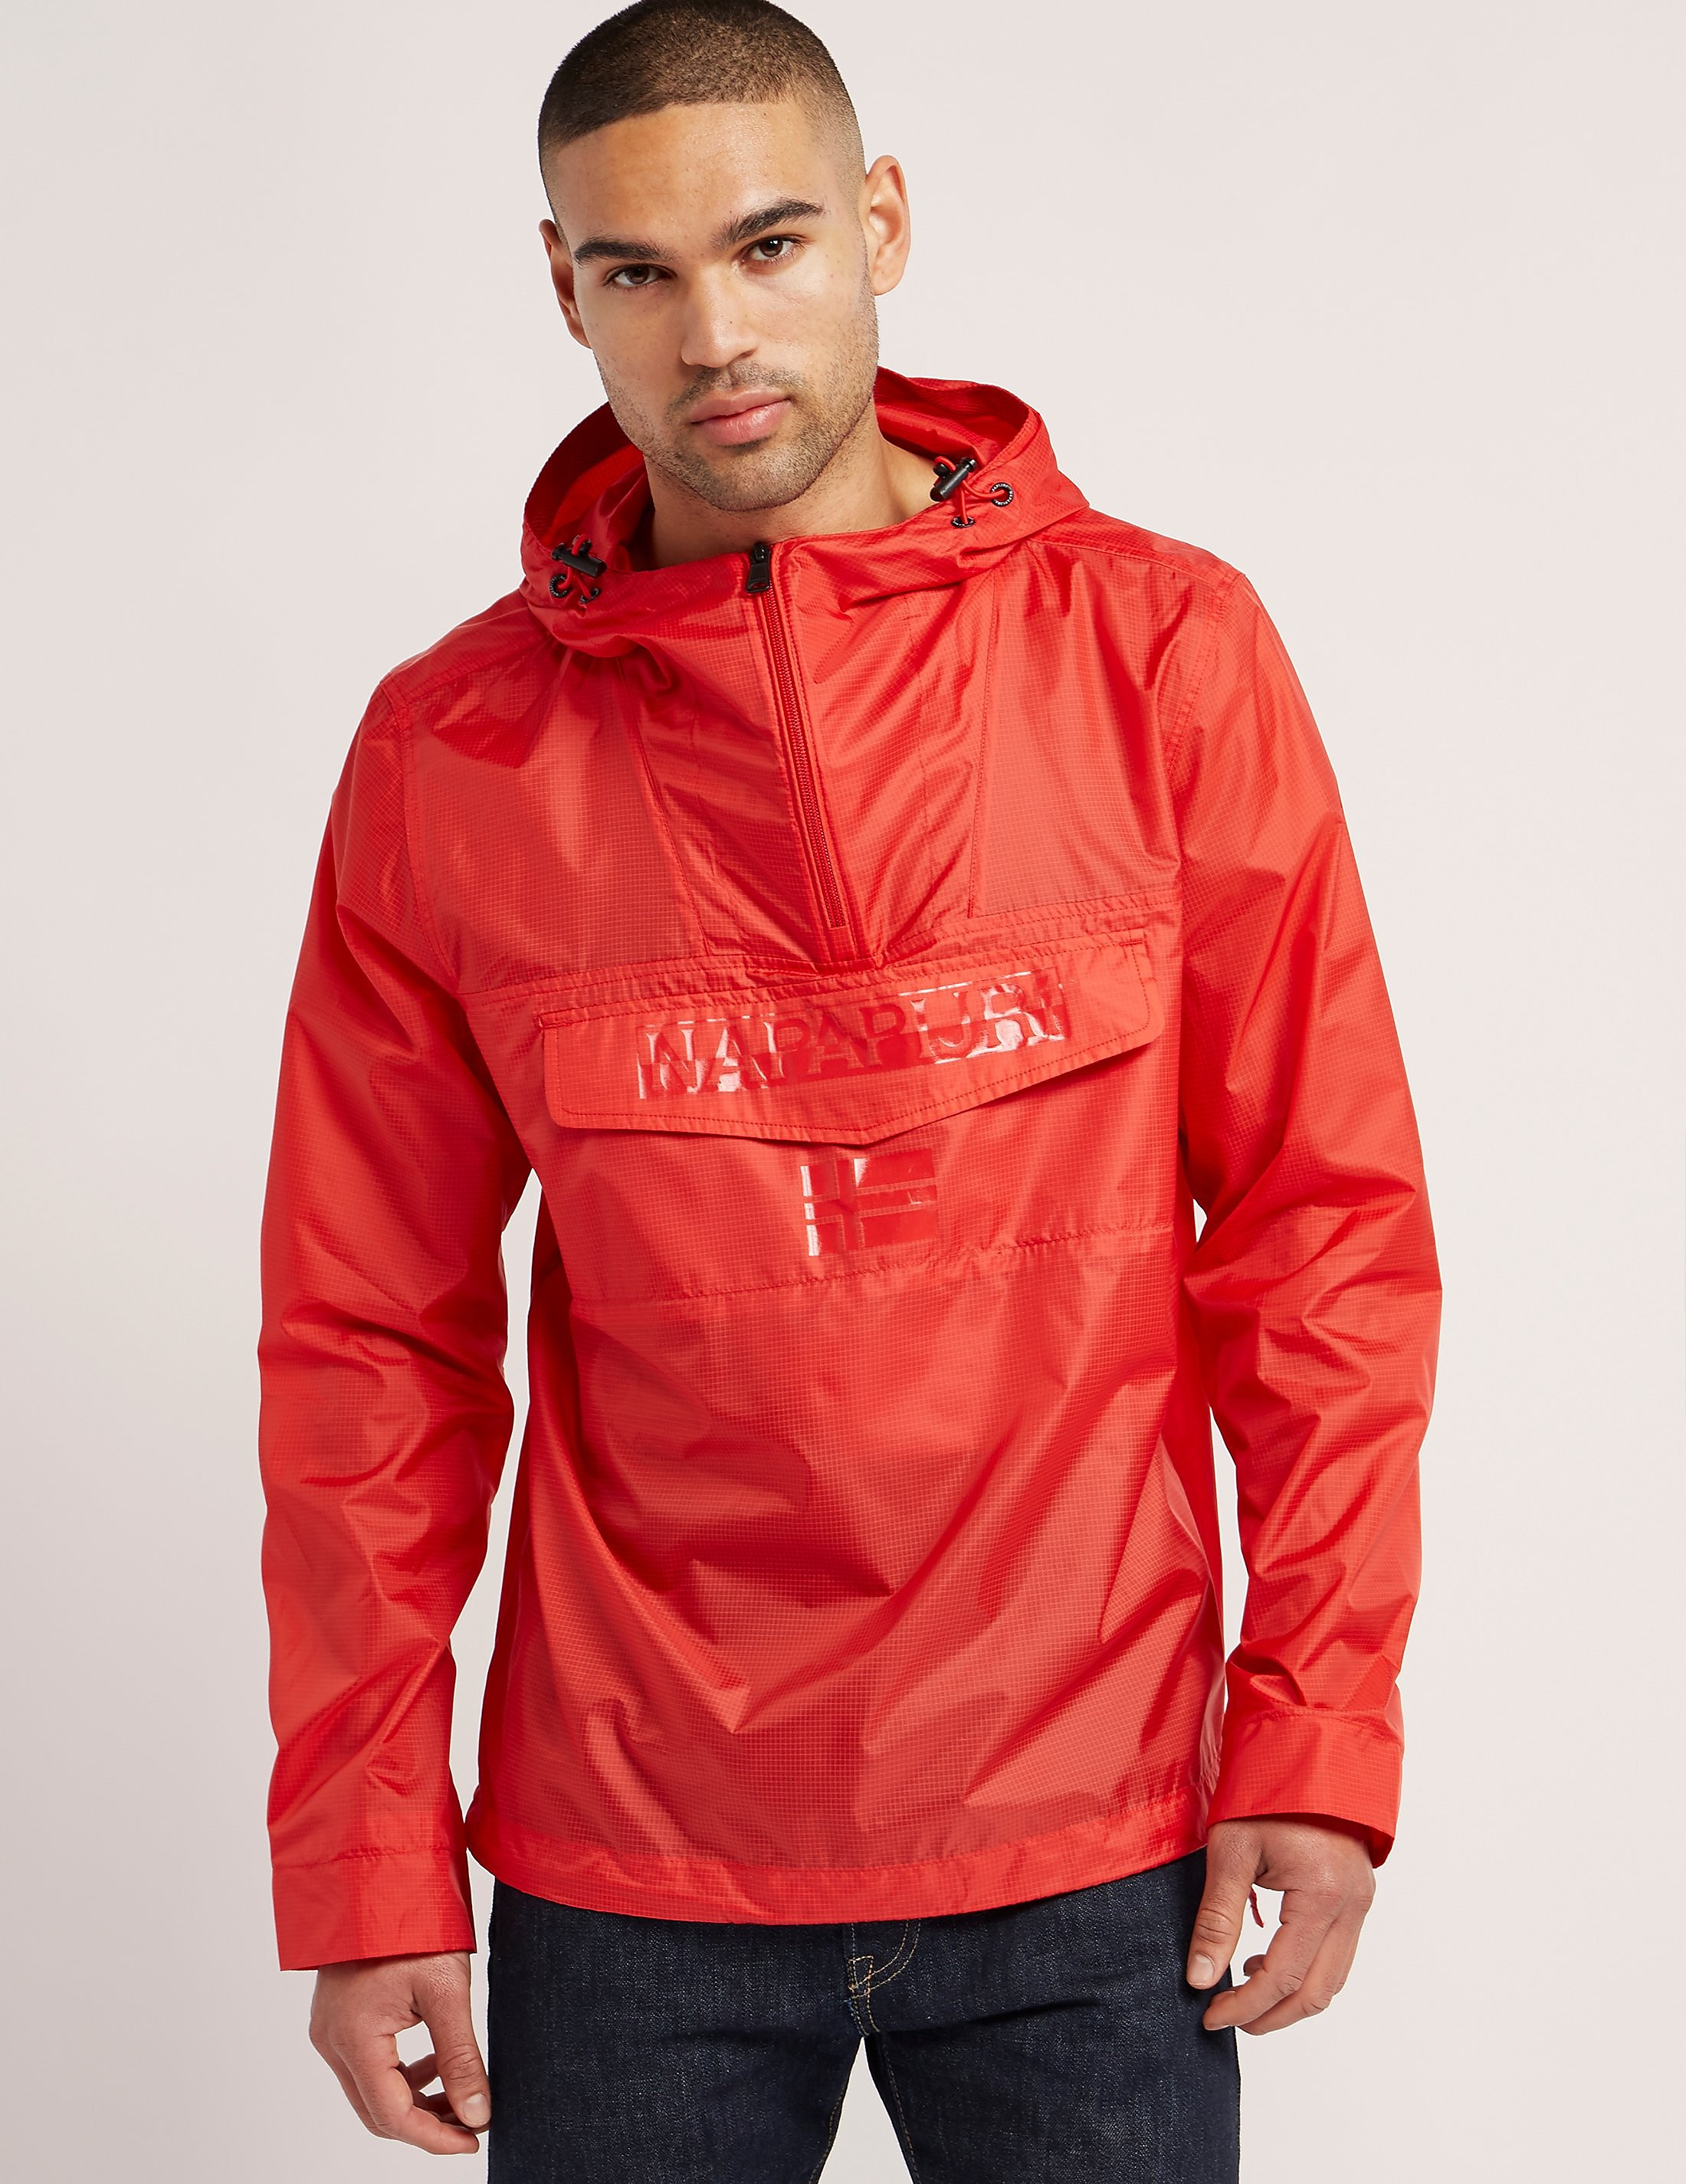 Napapijri Asheville Lighweight Jacket